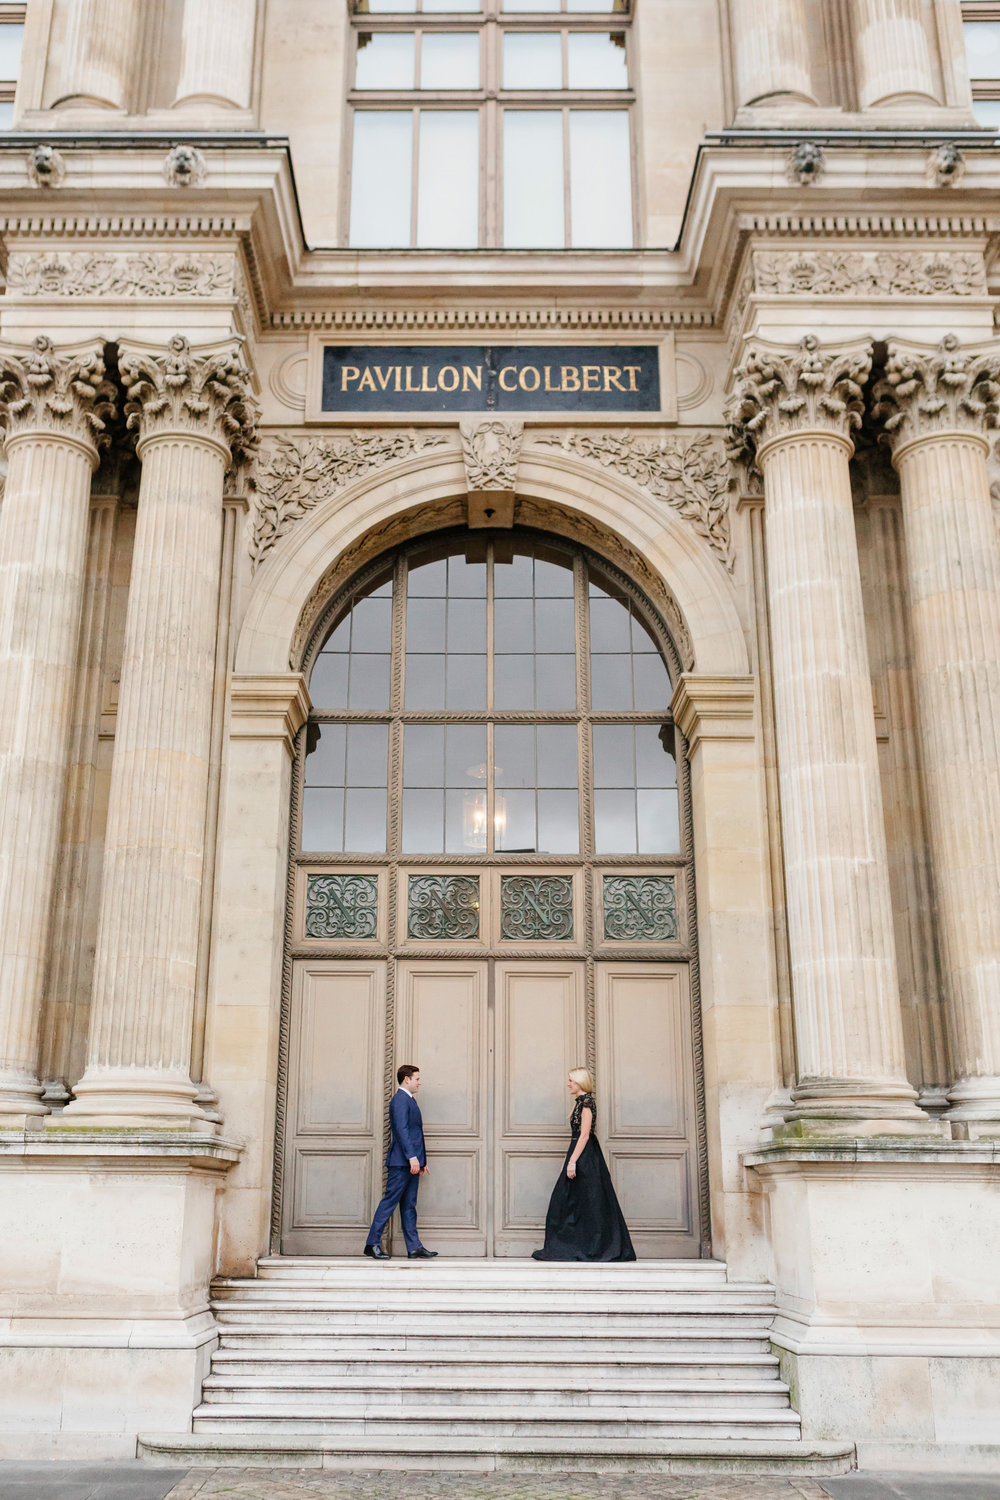 Paris vacation couple portrait standing by the door of Pavillon Colbert at Louvre Museum captured by Paris Photographer Federico Guendel www.iheartparis.fr